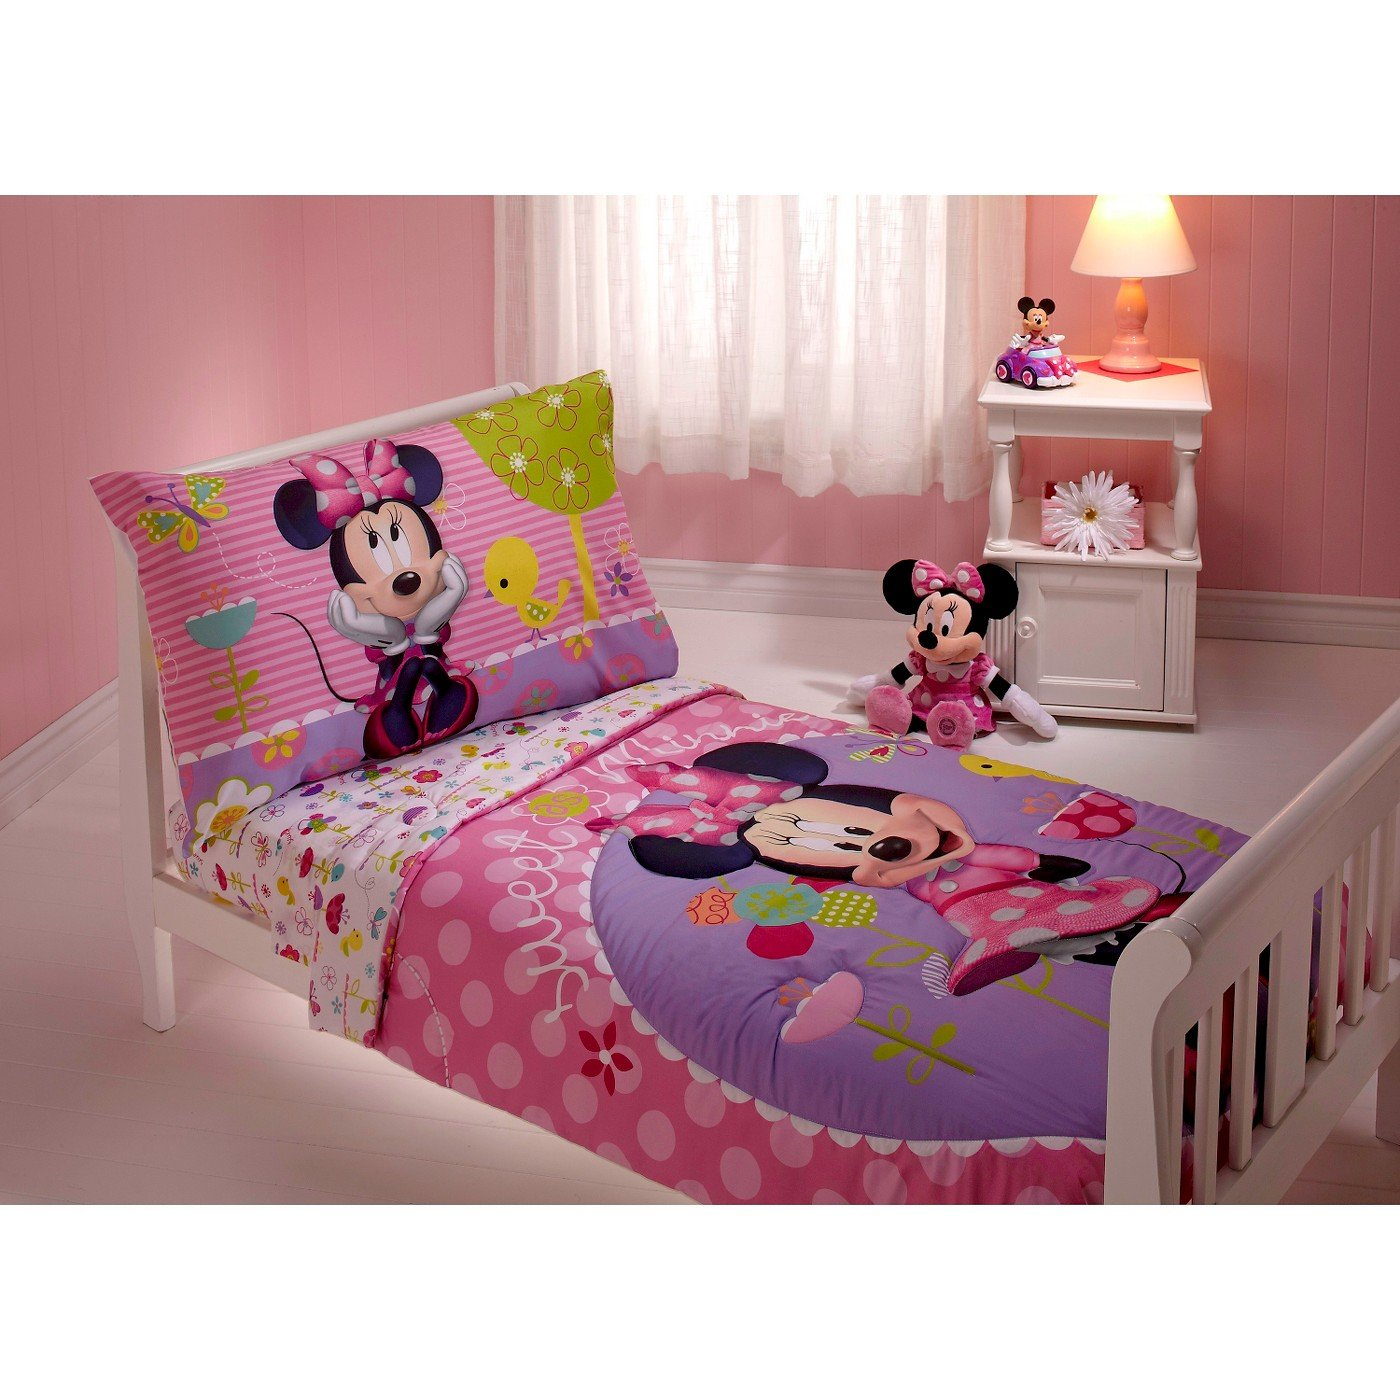 Minnie Mouse 4 Piece Toddler Bedding Set by Disney